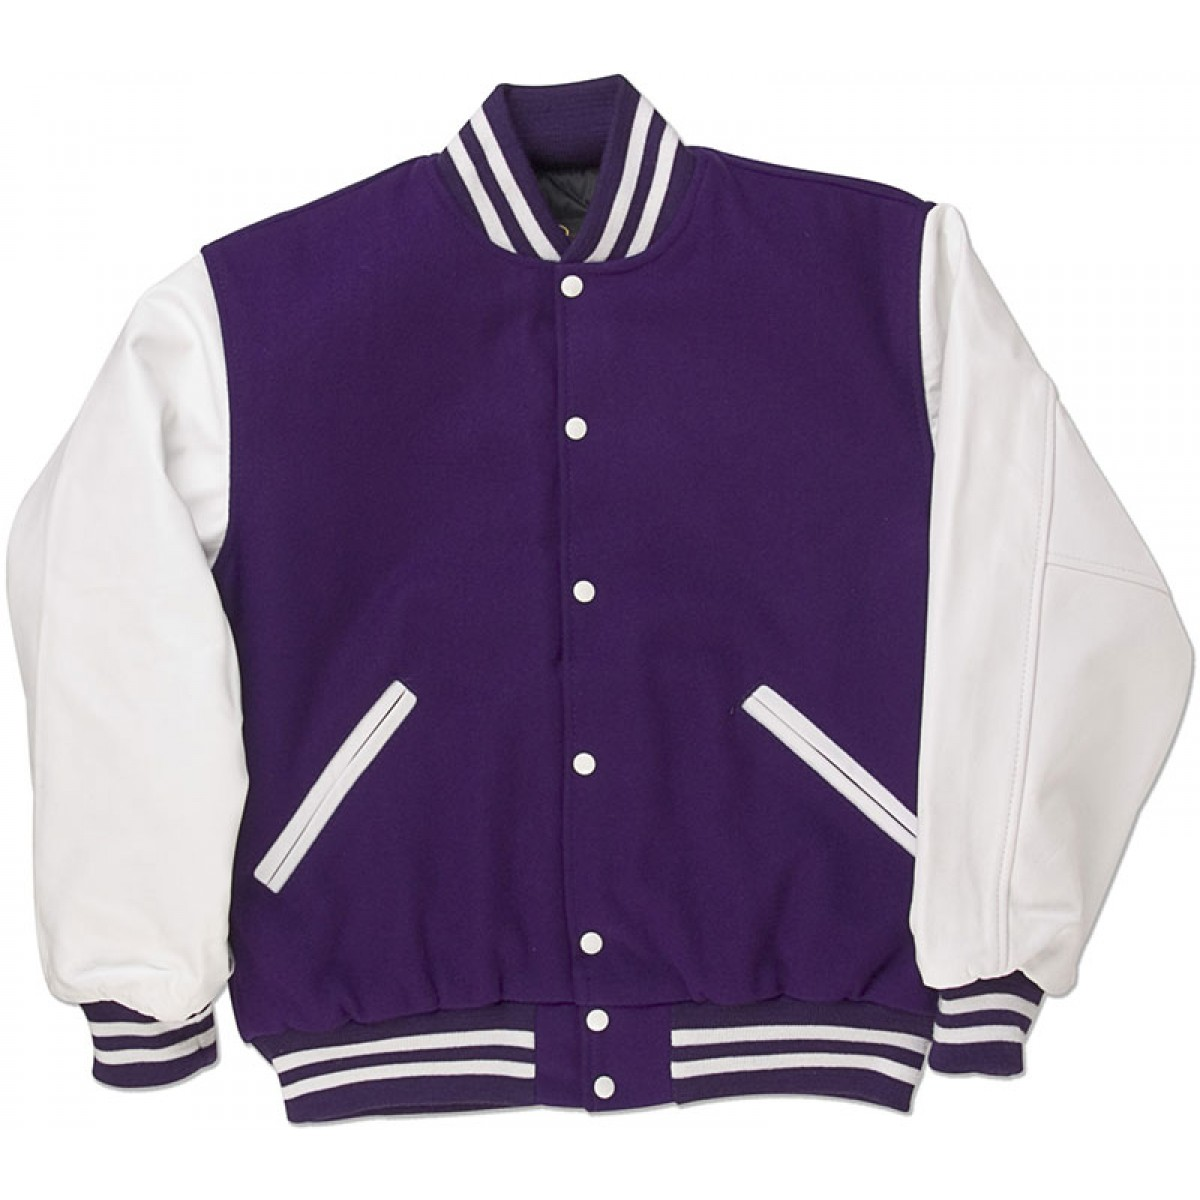 purple jacket an exotic choice for all purple jackets FEXLWHT